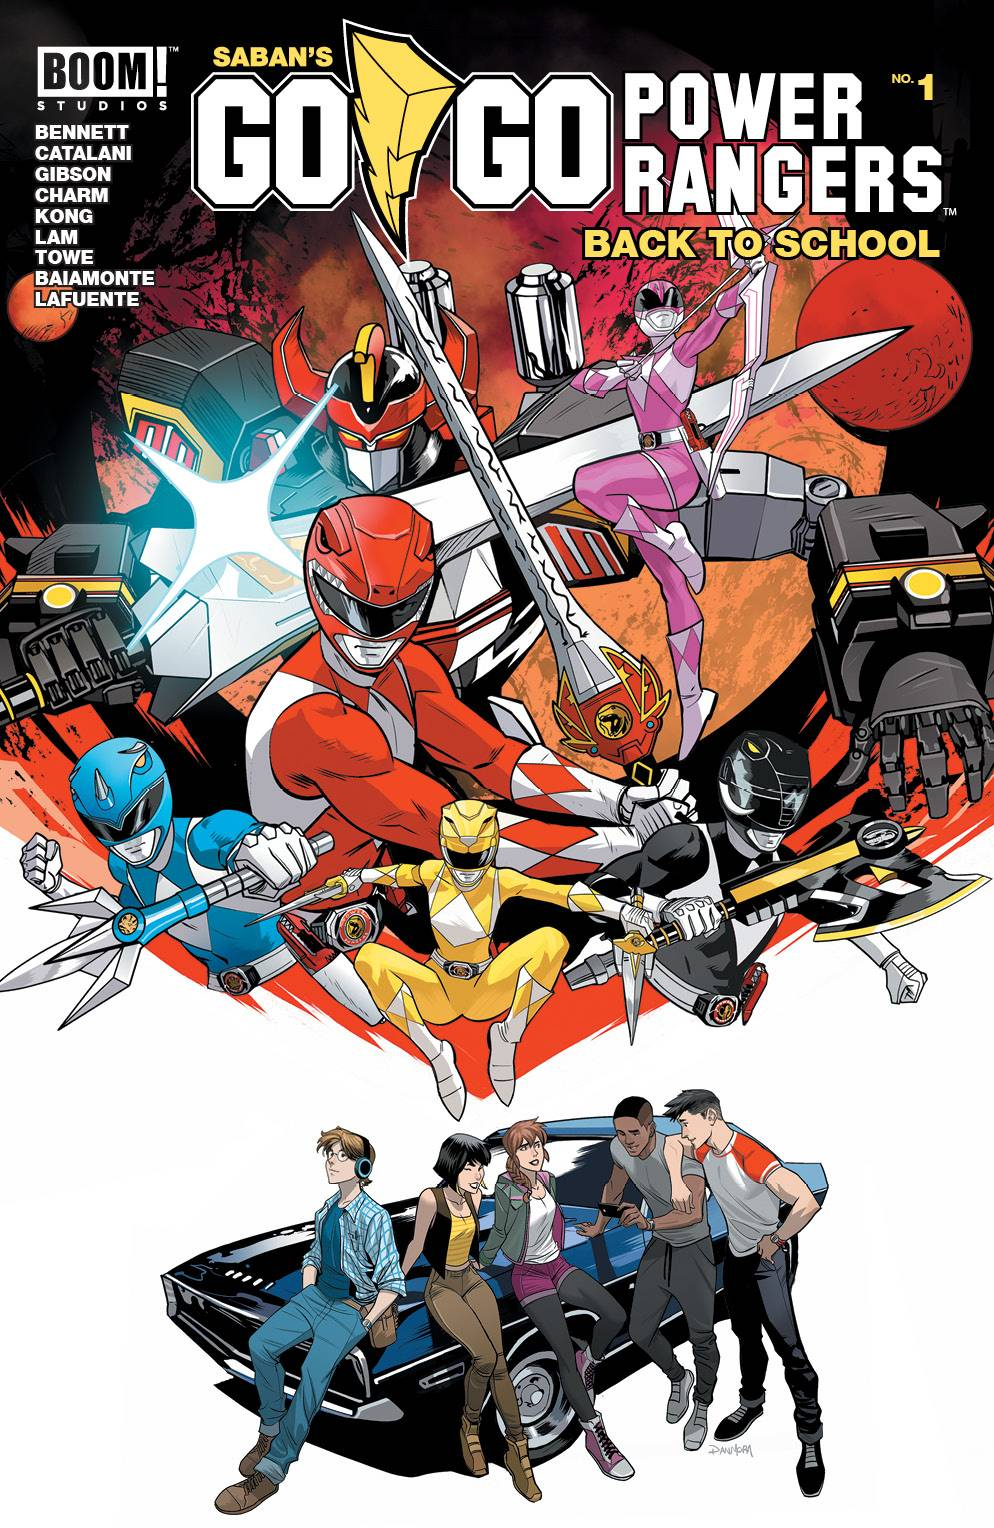 Go Go Power Rangers Back to School Special #1